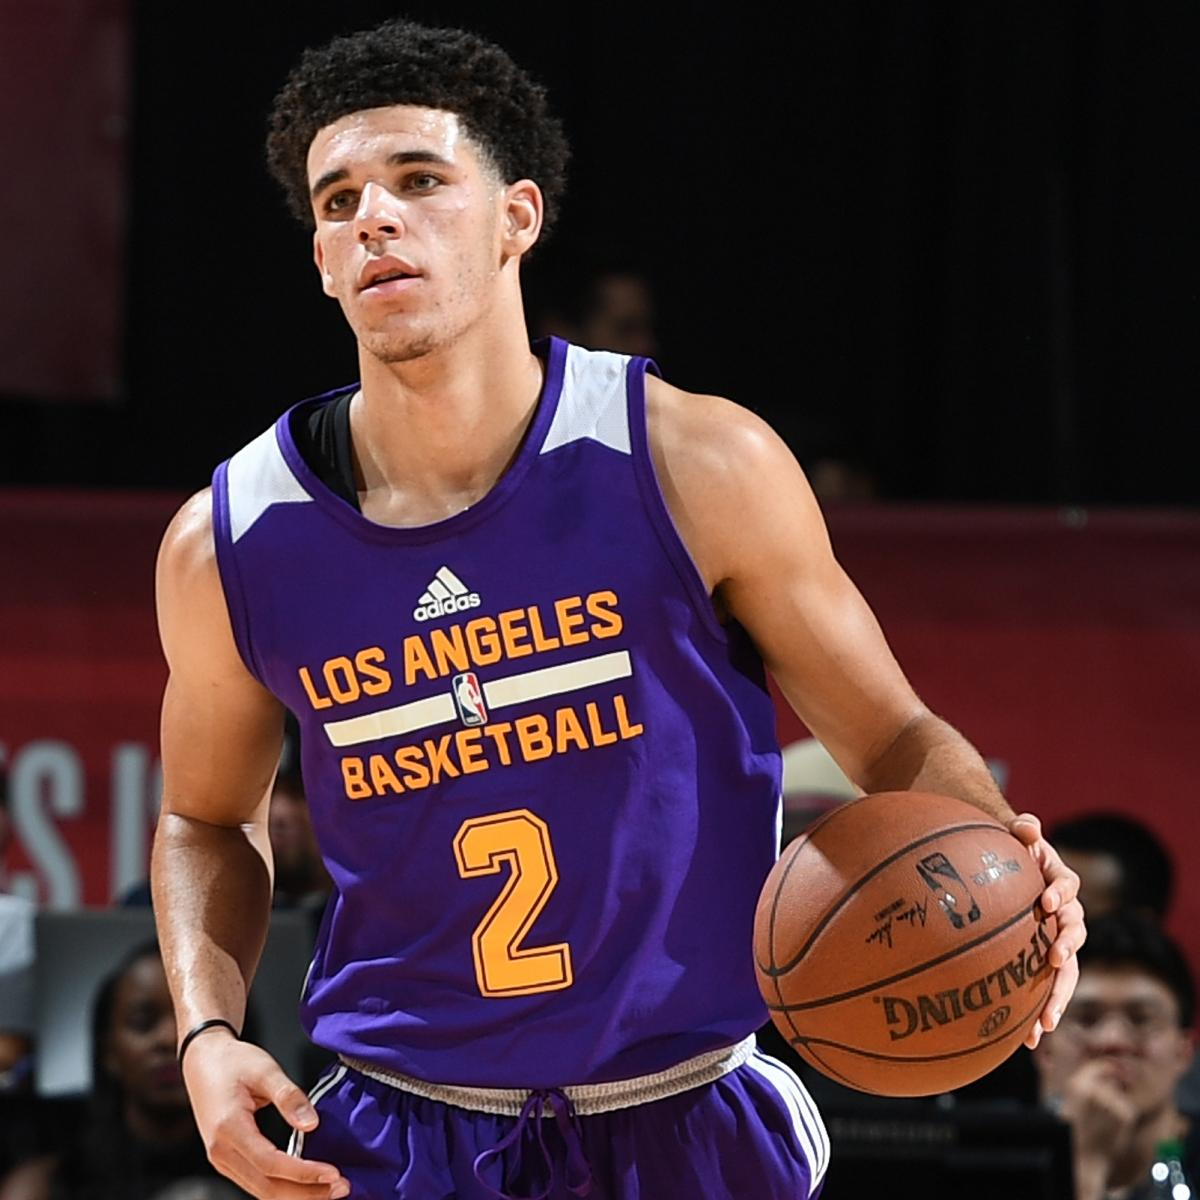 Colorado Shooting R H Youtube Com: Lonzo Ball Drops 2nd Triple-Double In Lakers Vs. Cavaliers